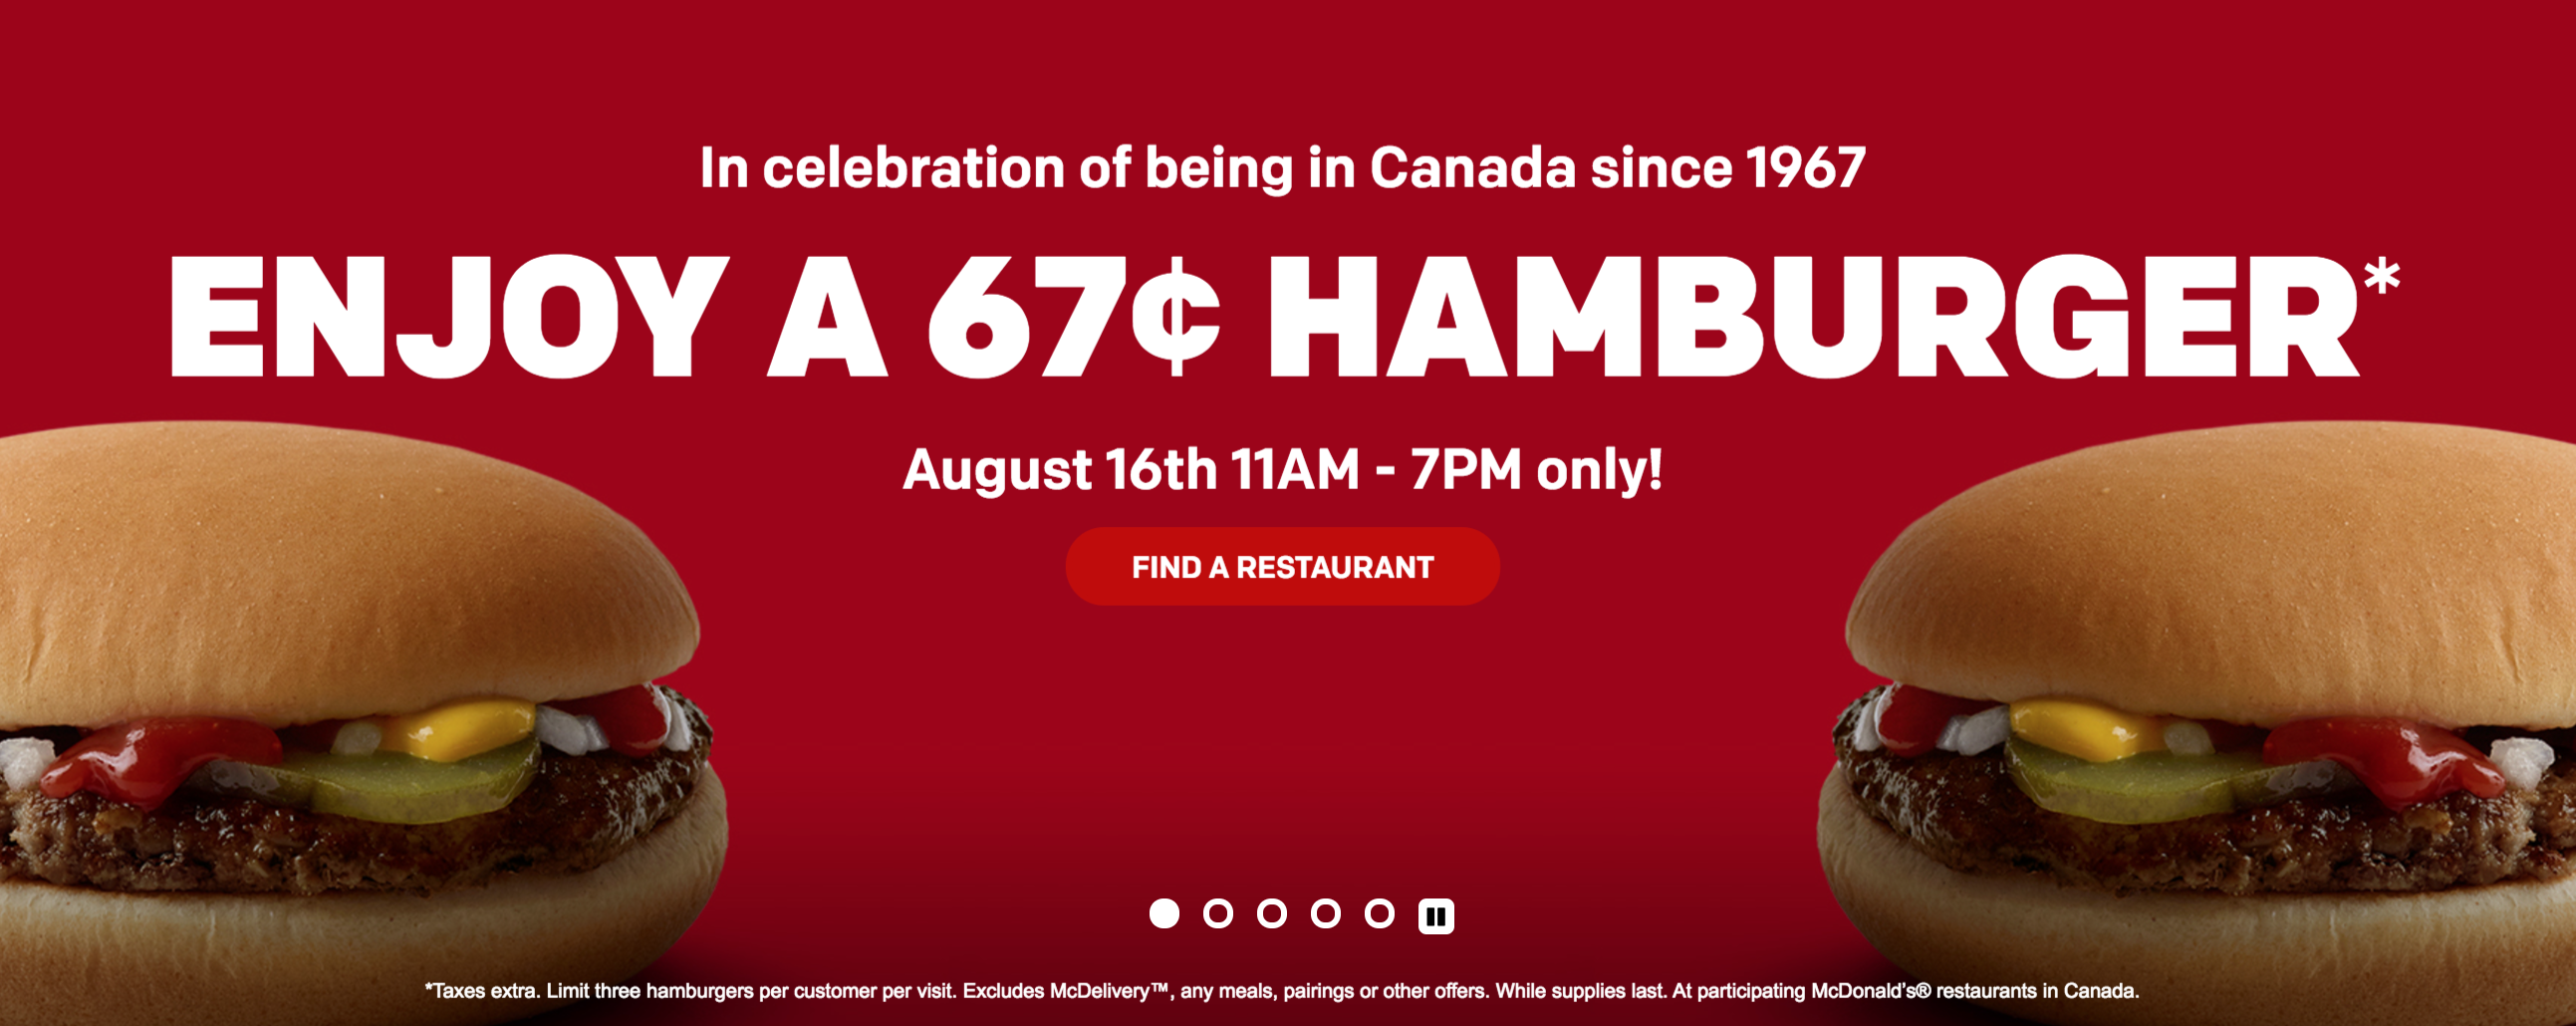 McDonald's Canada Hamburger for Only 67 Cents! | Canadian ...